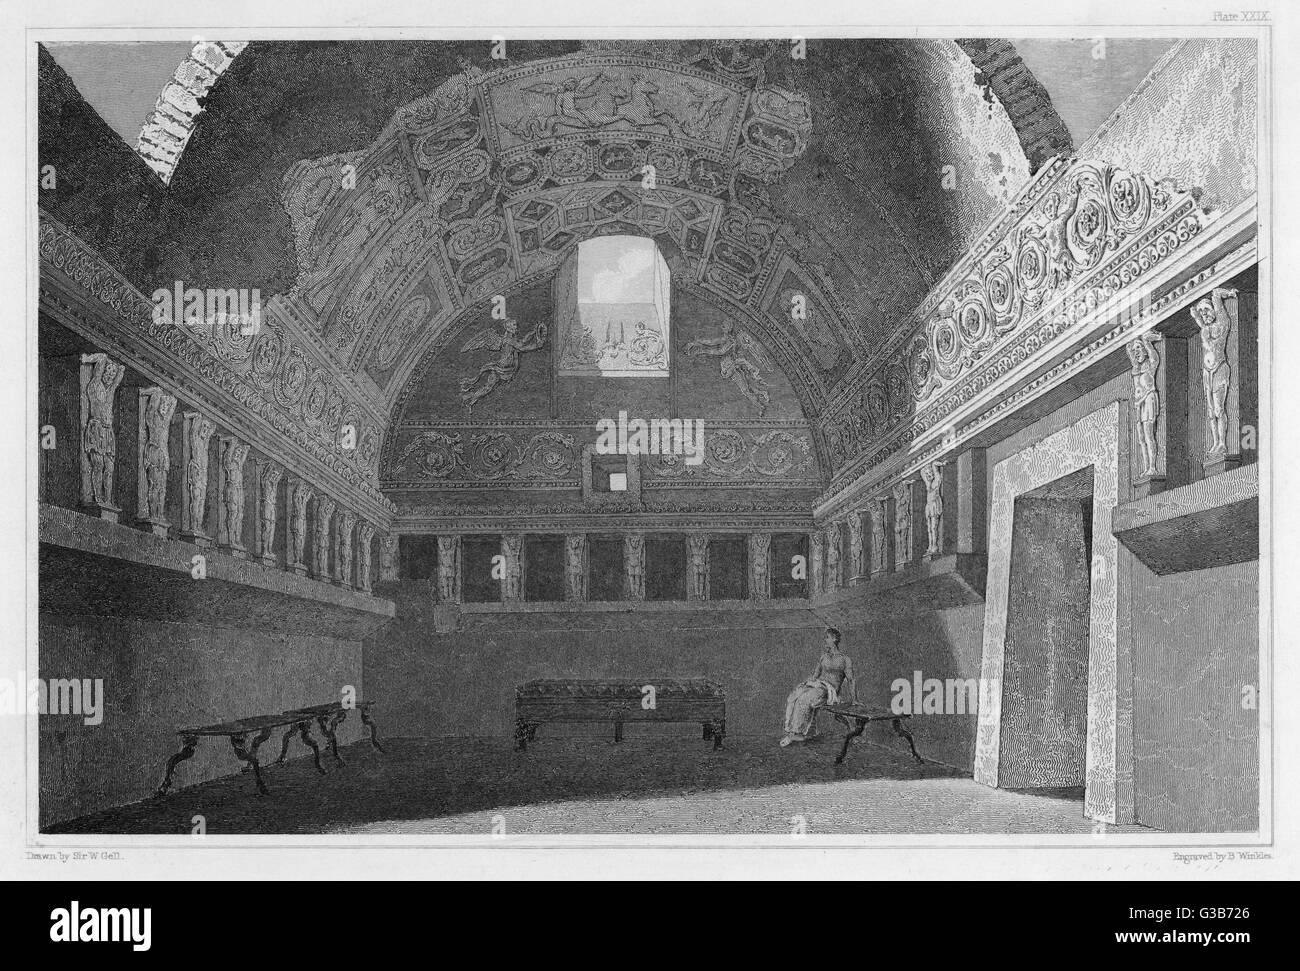 A view of the excavated  Tepidarium (warm room) from  the Forum baths at Pompeii,  which boasts elaborate wall  - Stock Image